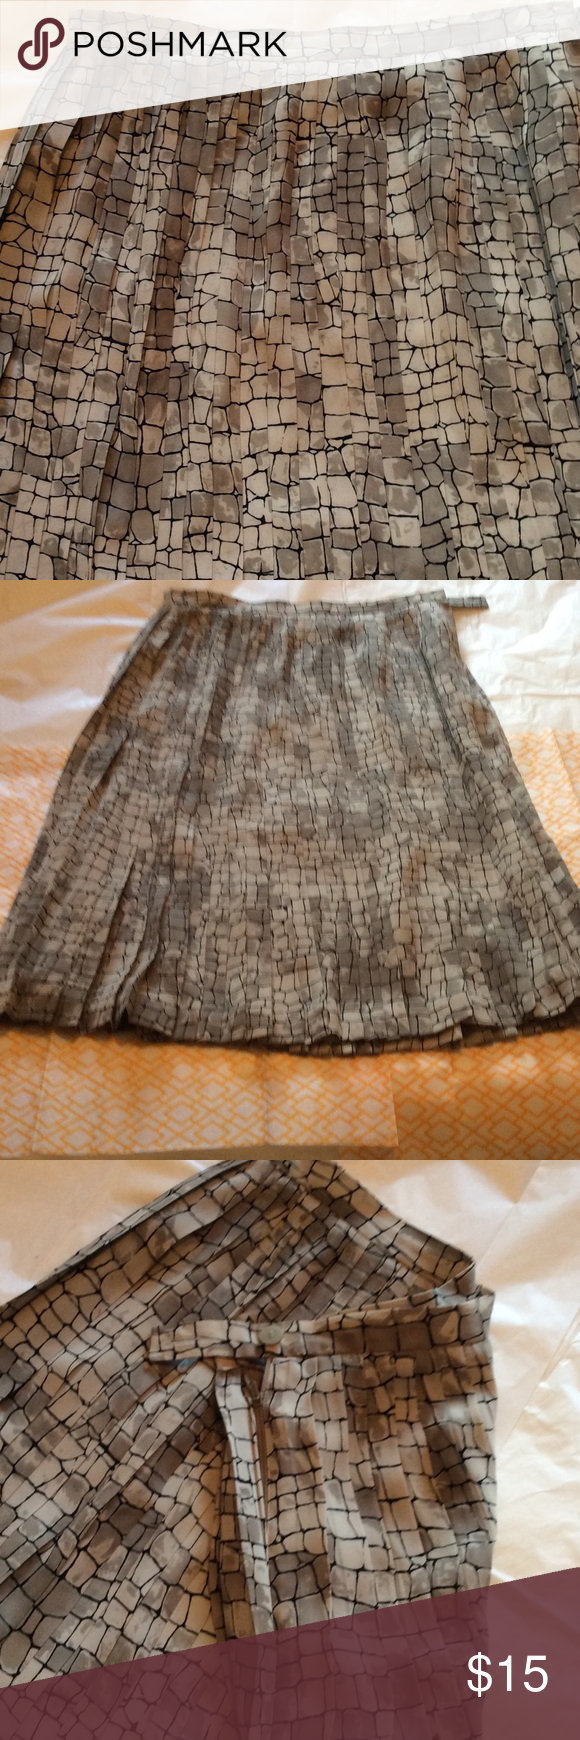 Pleated skirt Georgette type fabric pleated skirt. Labeled 10 fits small at waist. See measurements flat sits at natural waist 14in, hip 18in, 26in length. Great condition. Josephine Chaus Skirts